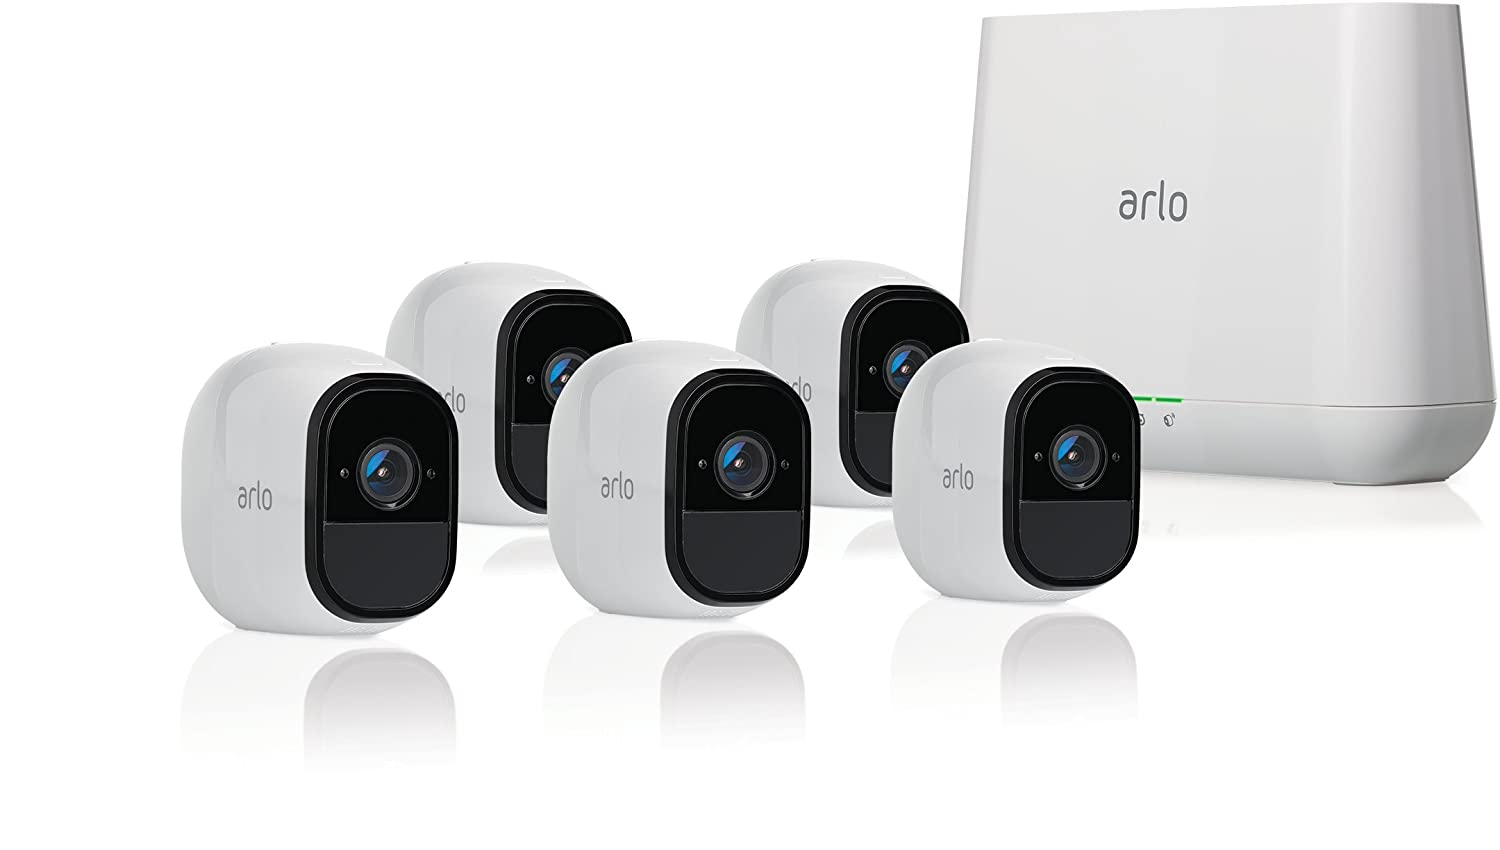 Arlo Pro – Wireless Home Security Camera System with Siren Rechargeable, Night vision, Indoor Outdoor, HD Video, 2-Way Audio, Wall Mount Cloud Storage Included 5 camera kit VMS4530